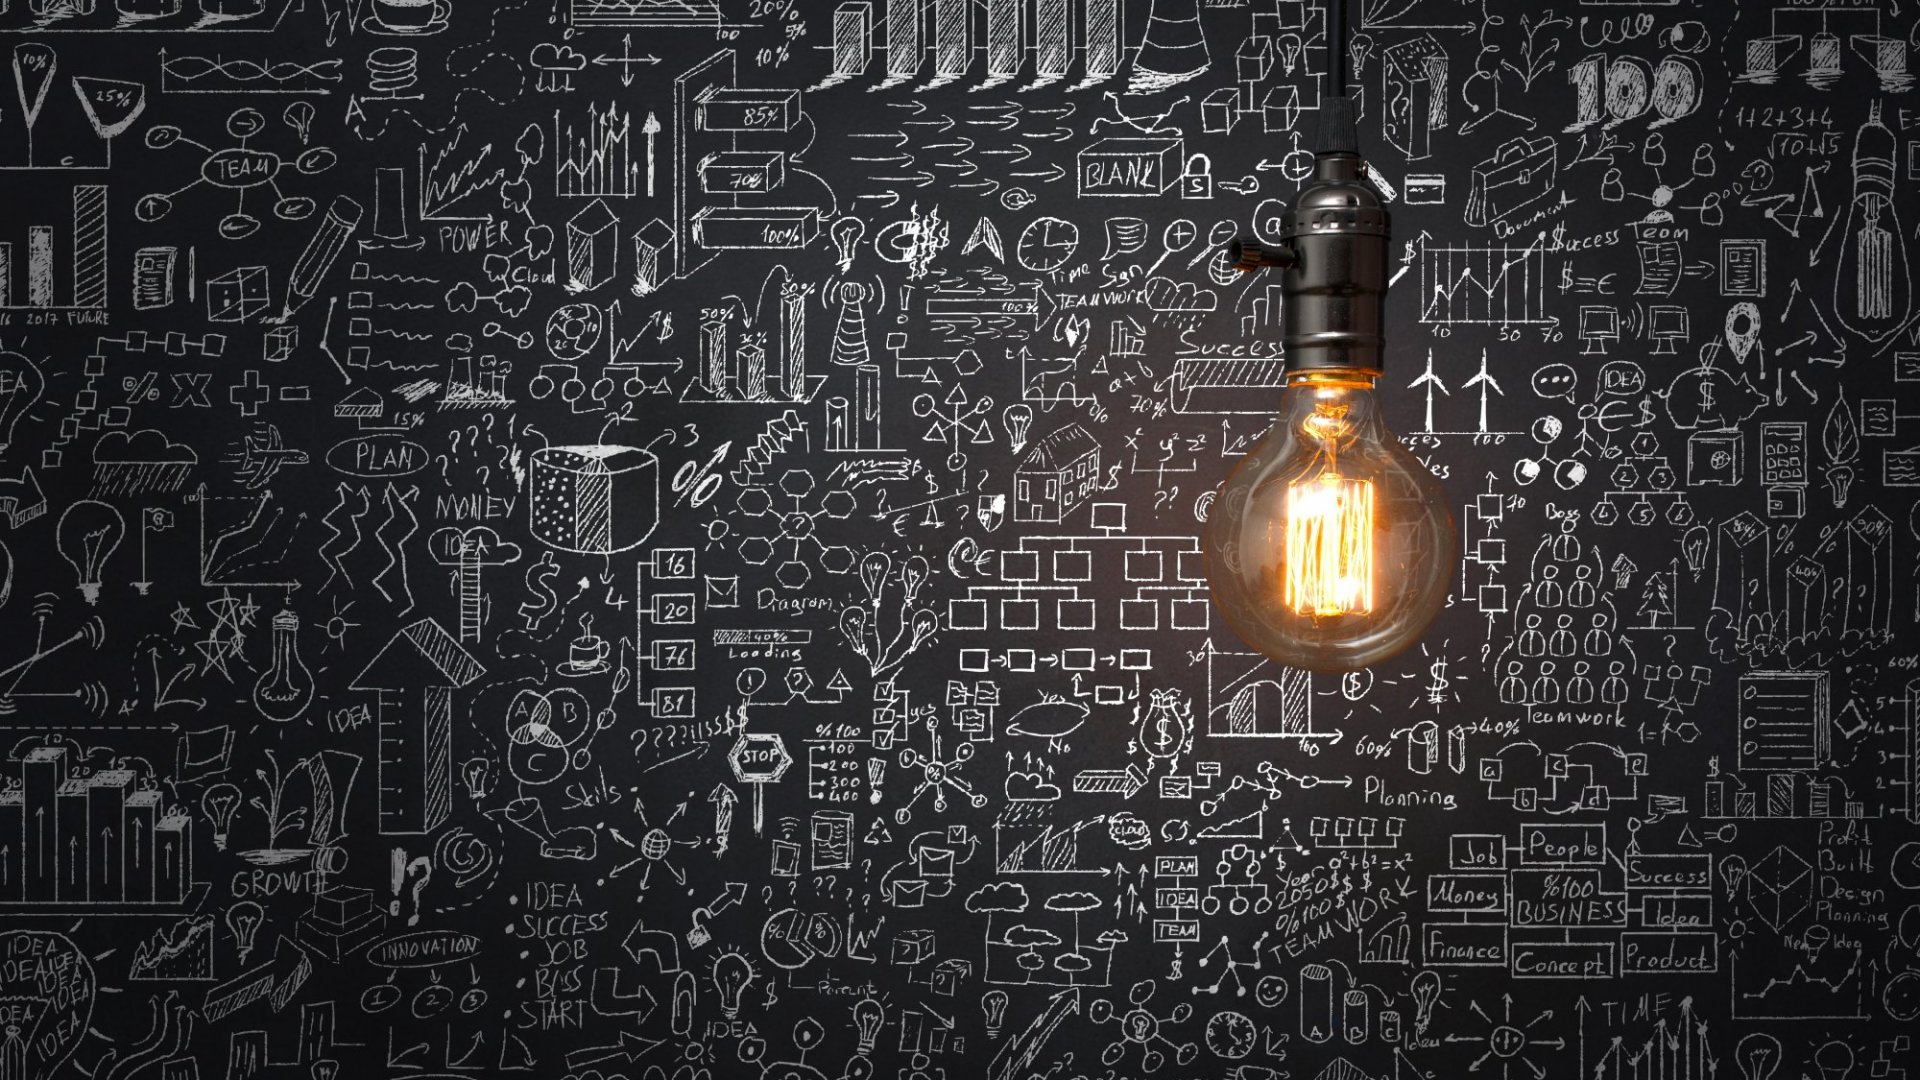 Steal These 5 Exercises From Innovation Consultants to Come up With More Creative Ideas